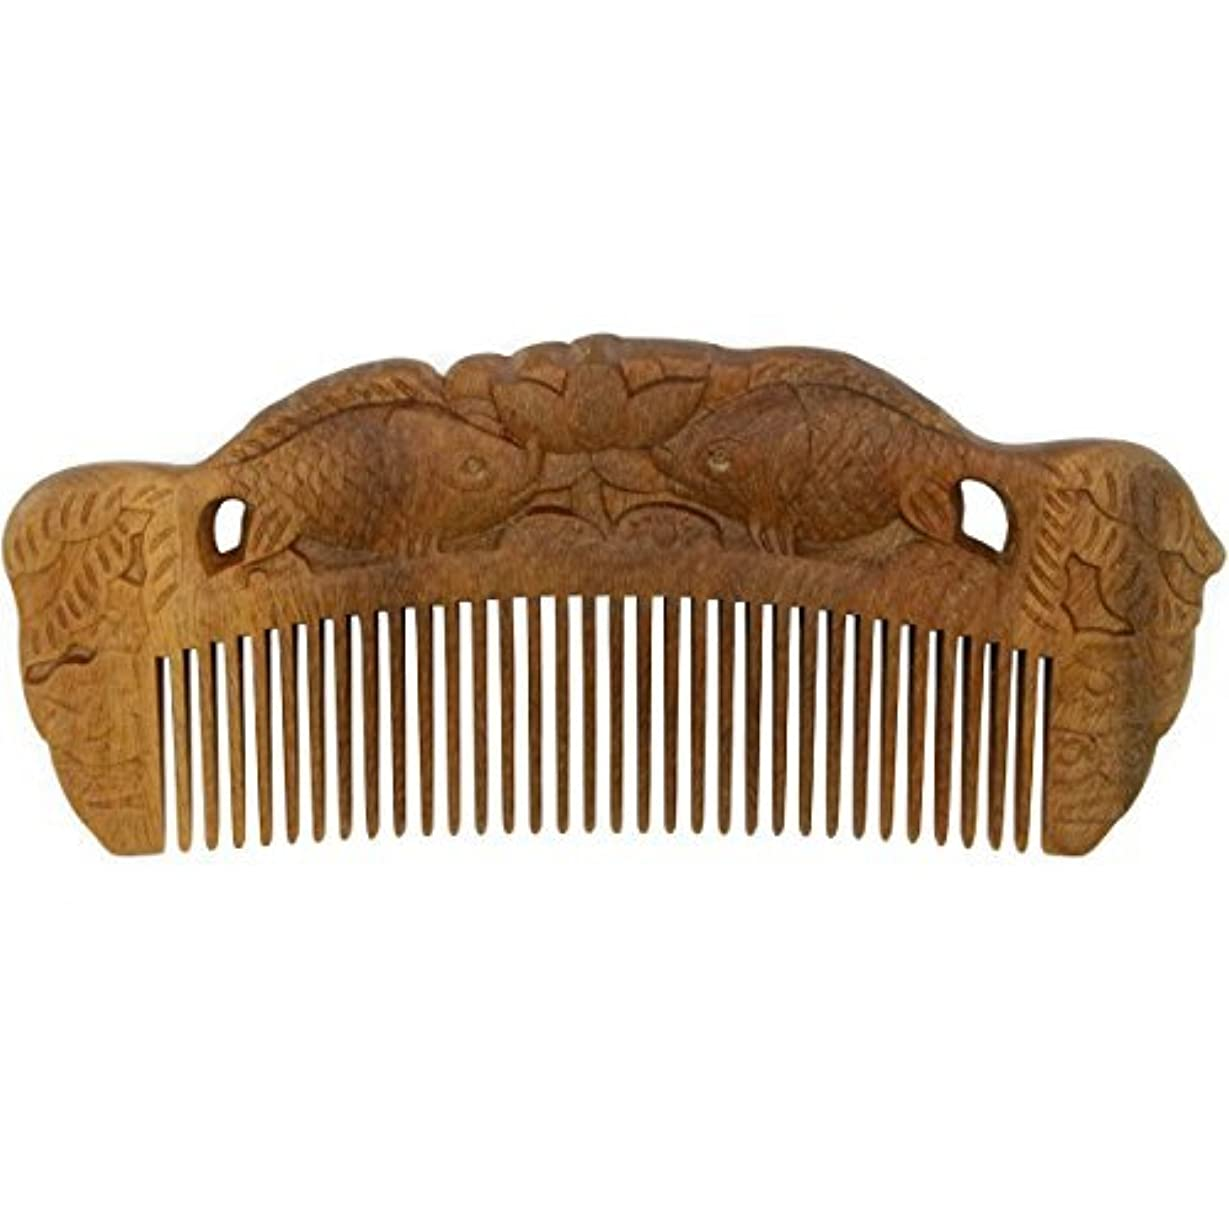 抑止する延ばすキャリアYOY Handmade Carved Natural Sandalwood Hair Comb - Anti-static No Snag Brush for Men's Mustache Beard Care Anti...